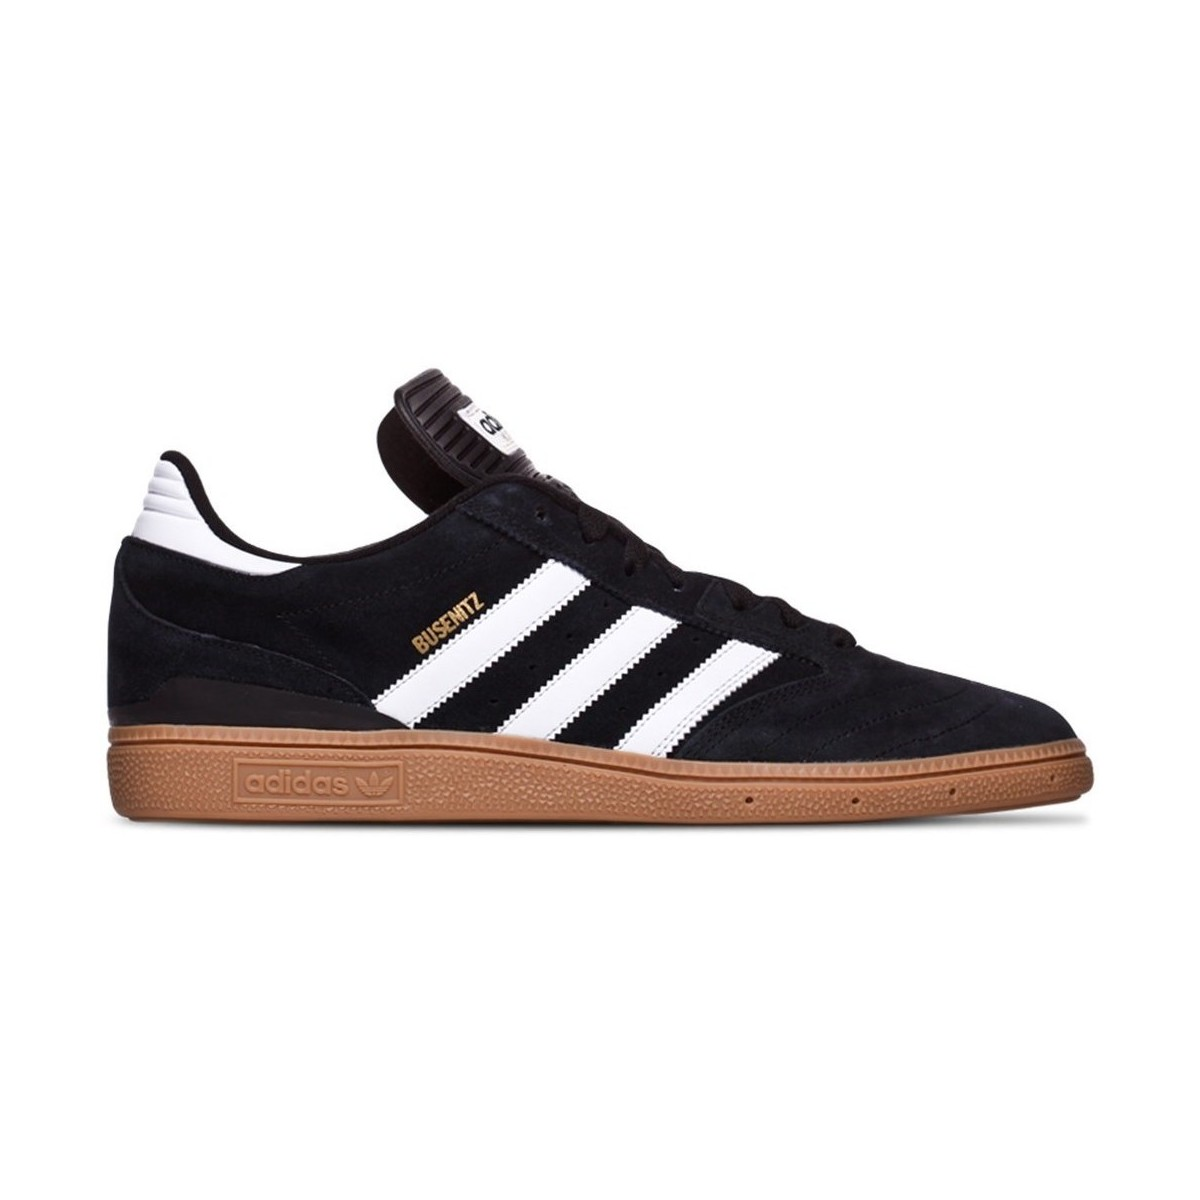 adidas originals busenitz pro beige blanc noir chaussures chaussures de skate homme 127 58. Black Bedroom Furniture Sets. Home Design Ideas